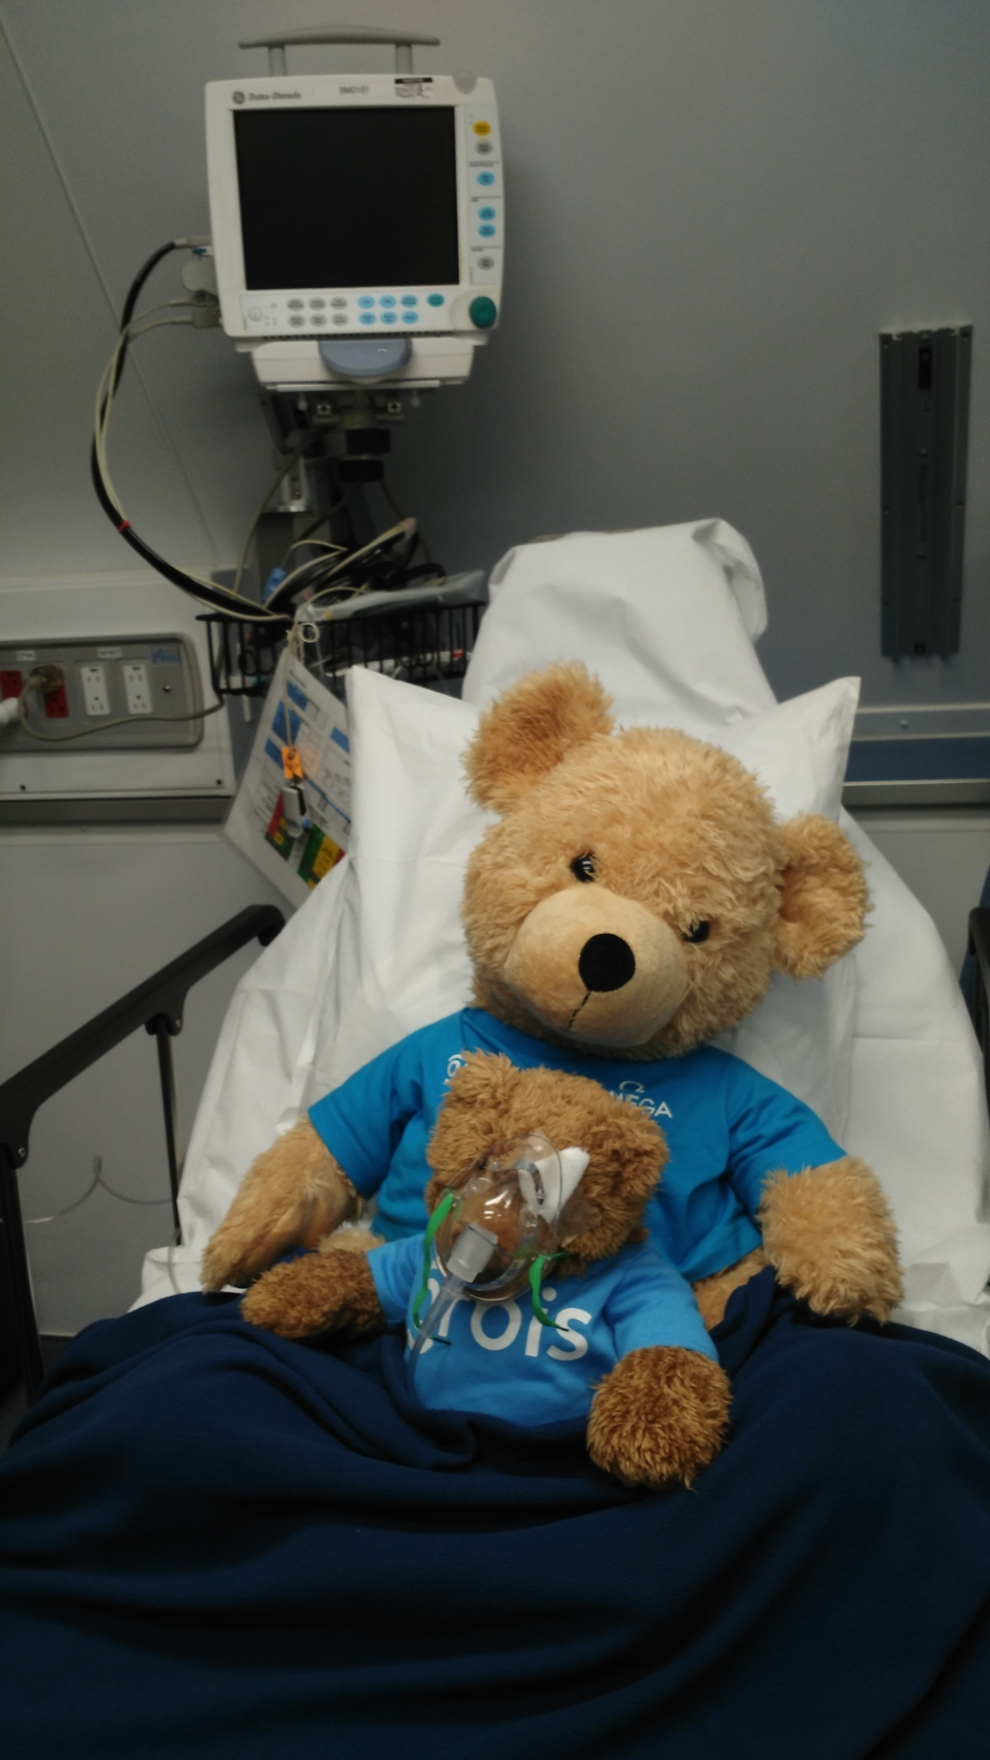 """Every child who receives an operation on board the airplane receives a complementary teddy bear. """"Teddy"""" undergoes the same eye procedure as the child, to make the operation less scary"""